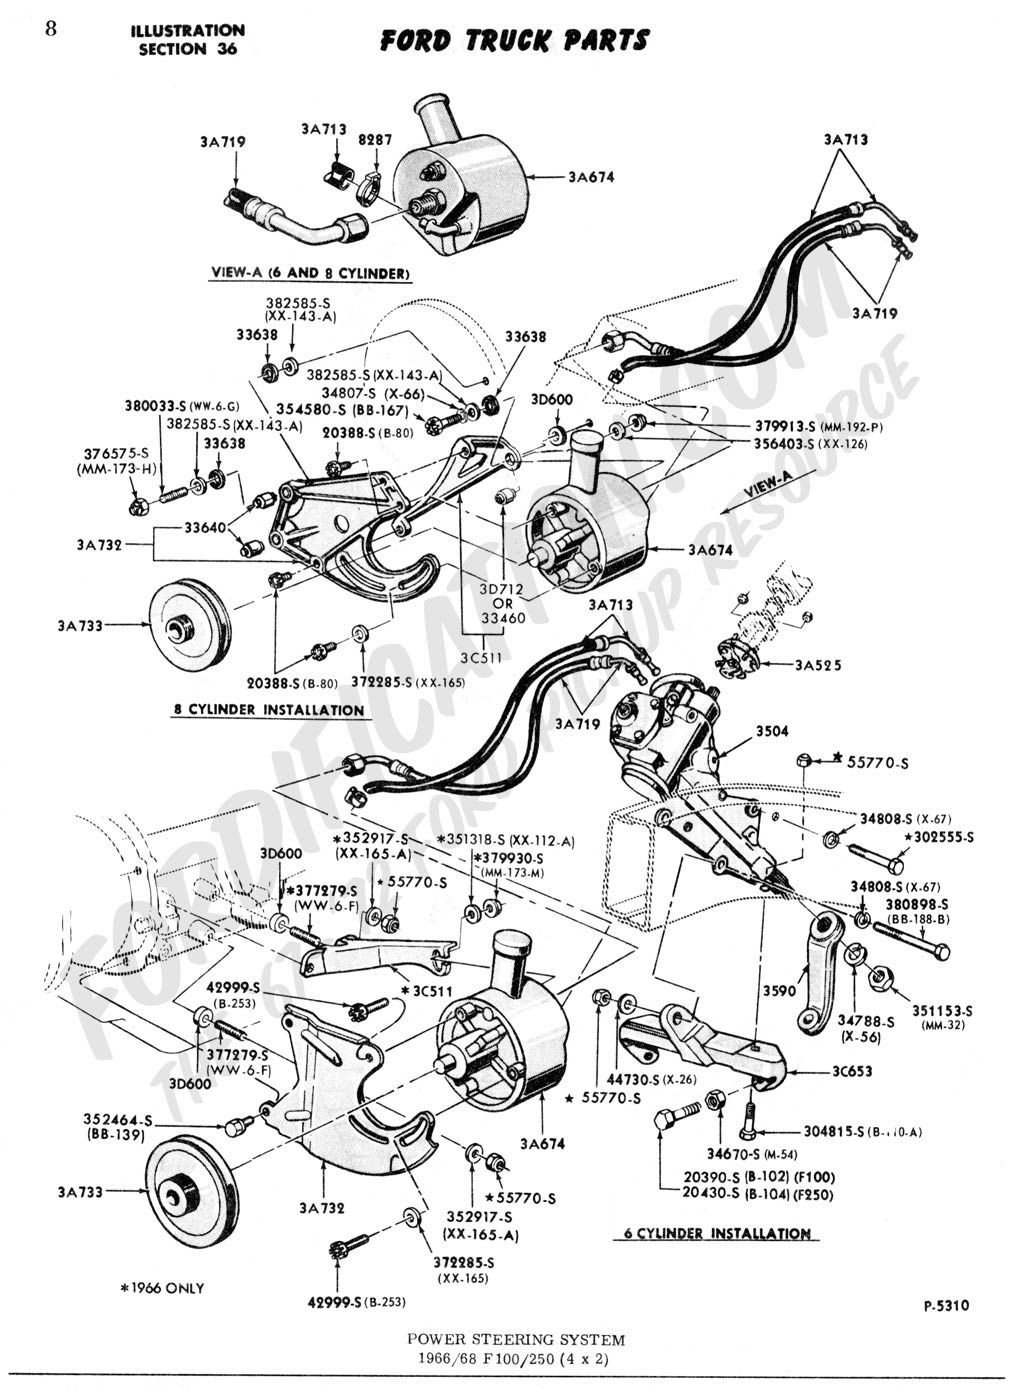 Power Steering Motor Diagram